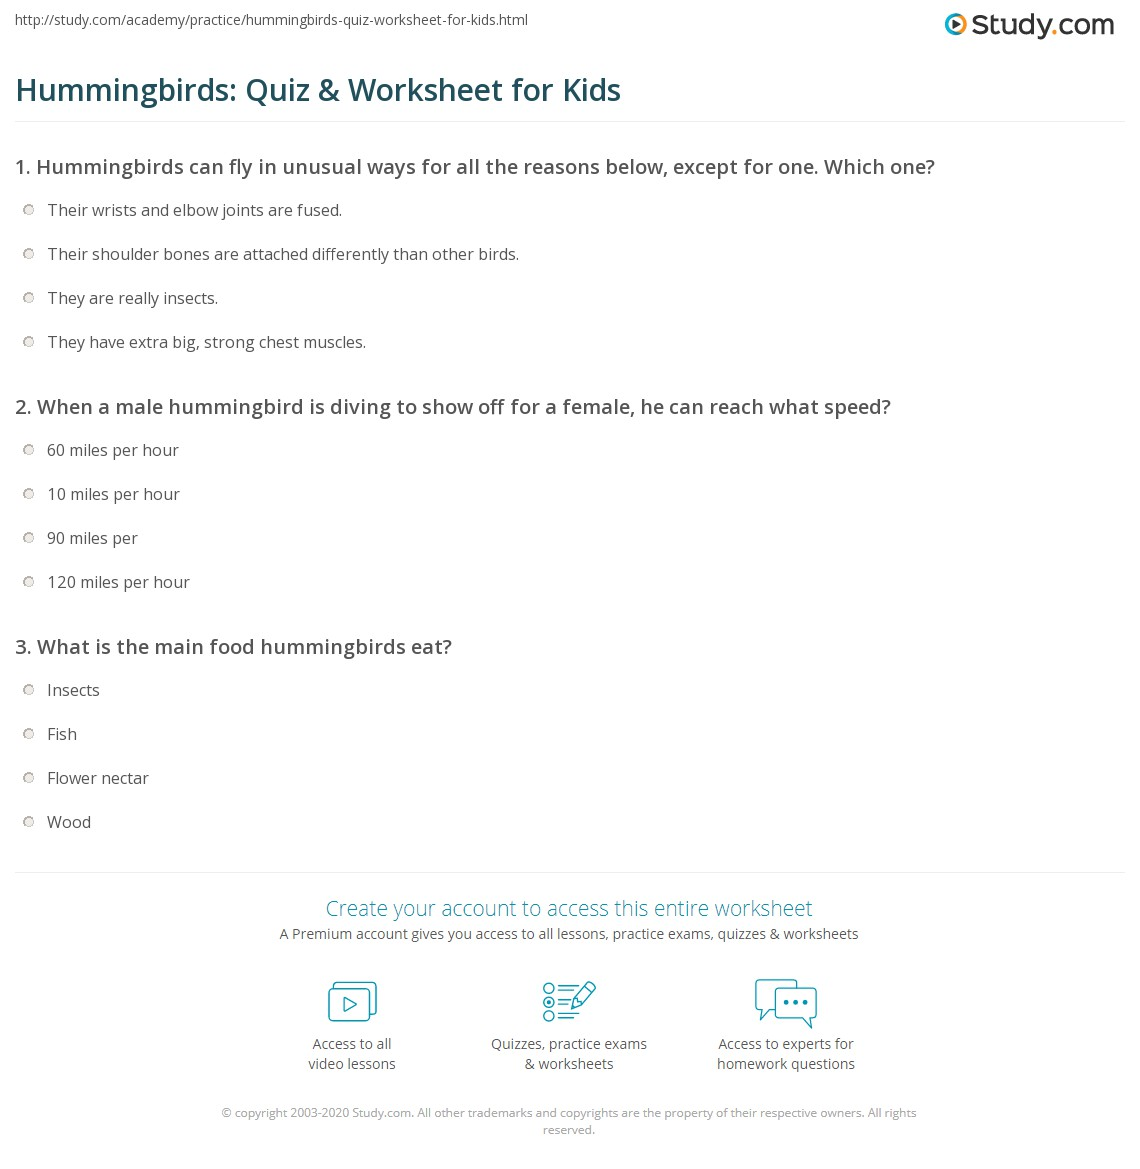 Hummingbirds Quiz Amp Worksheet For Kids